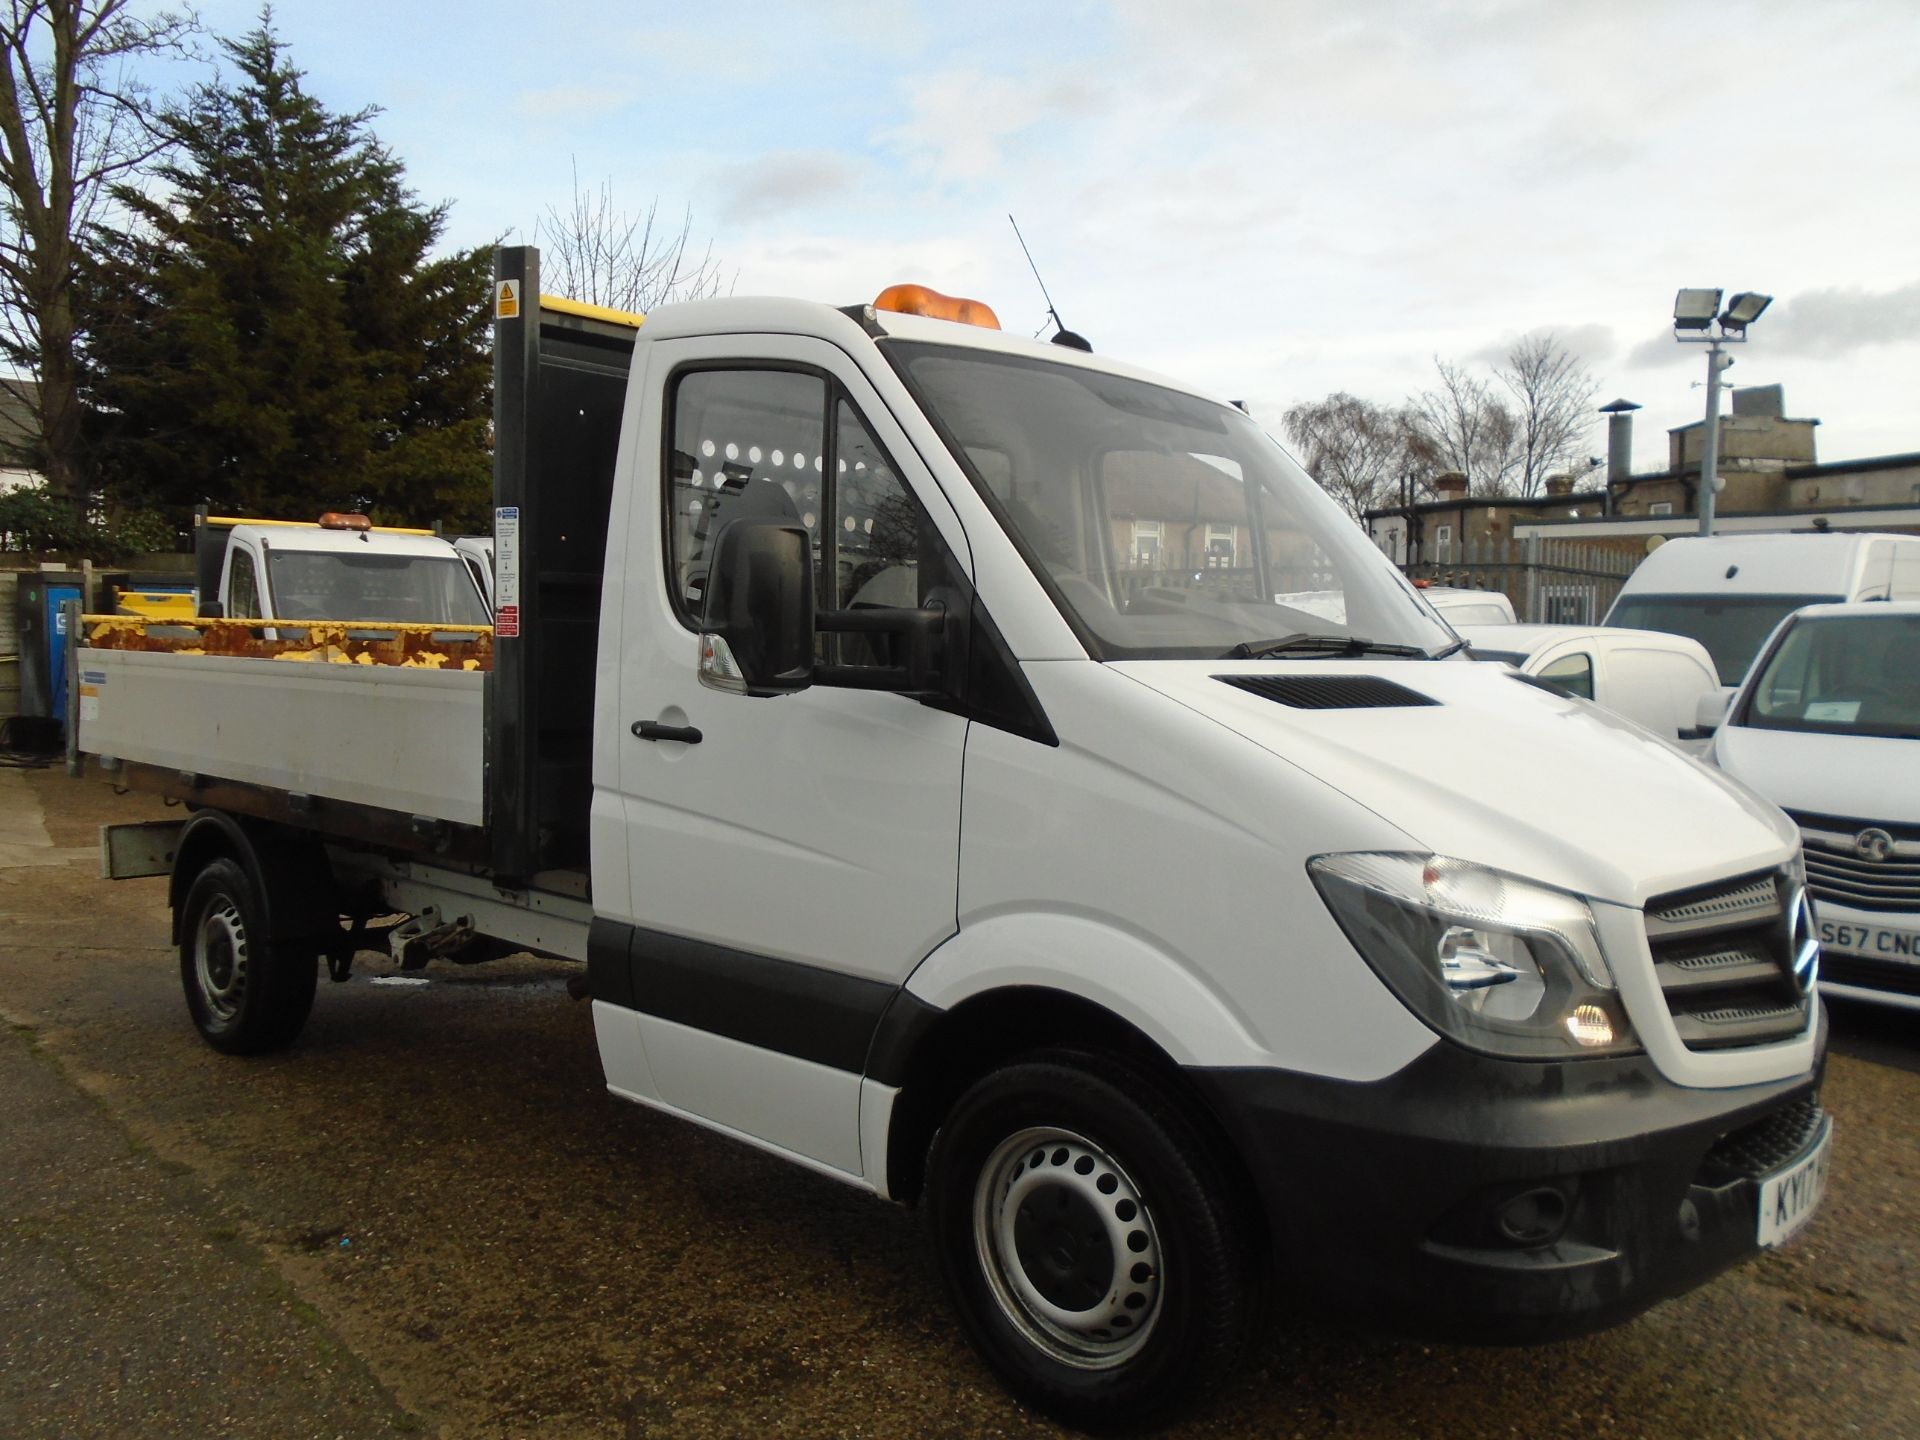 2017 Mercedes-Benz Sprinter 3.5T Chassis Cab *EURO 6* (KY17HDV)